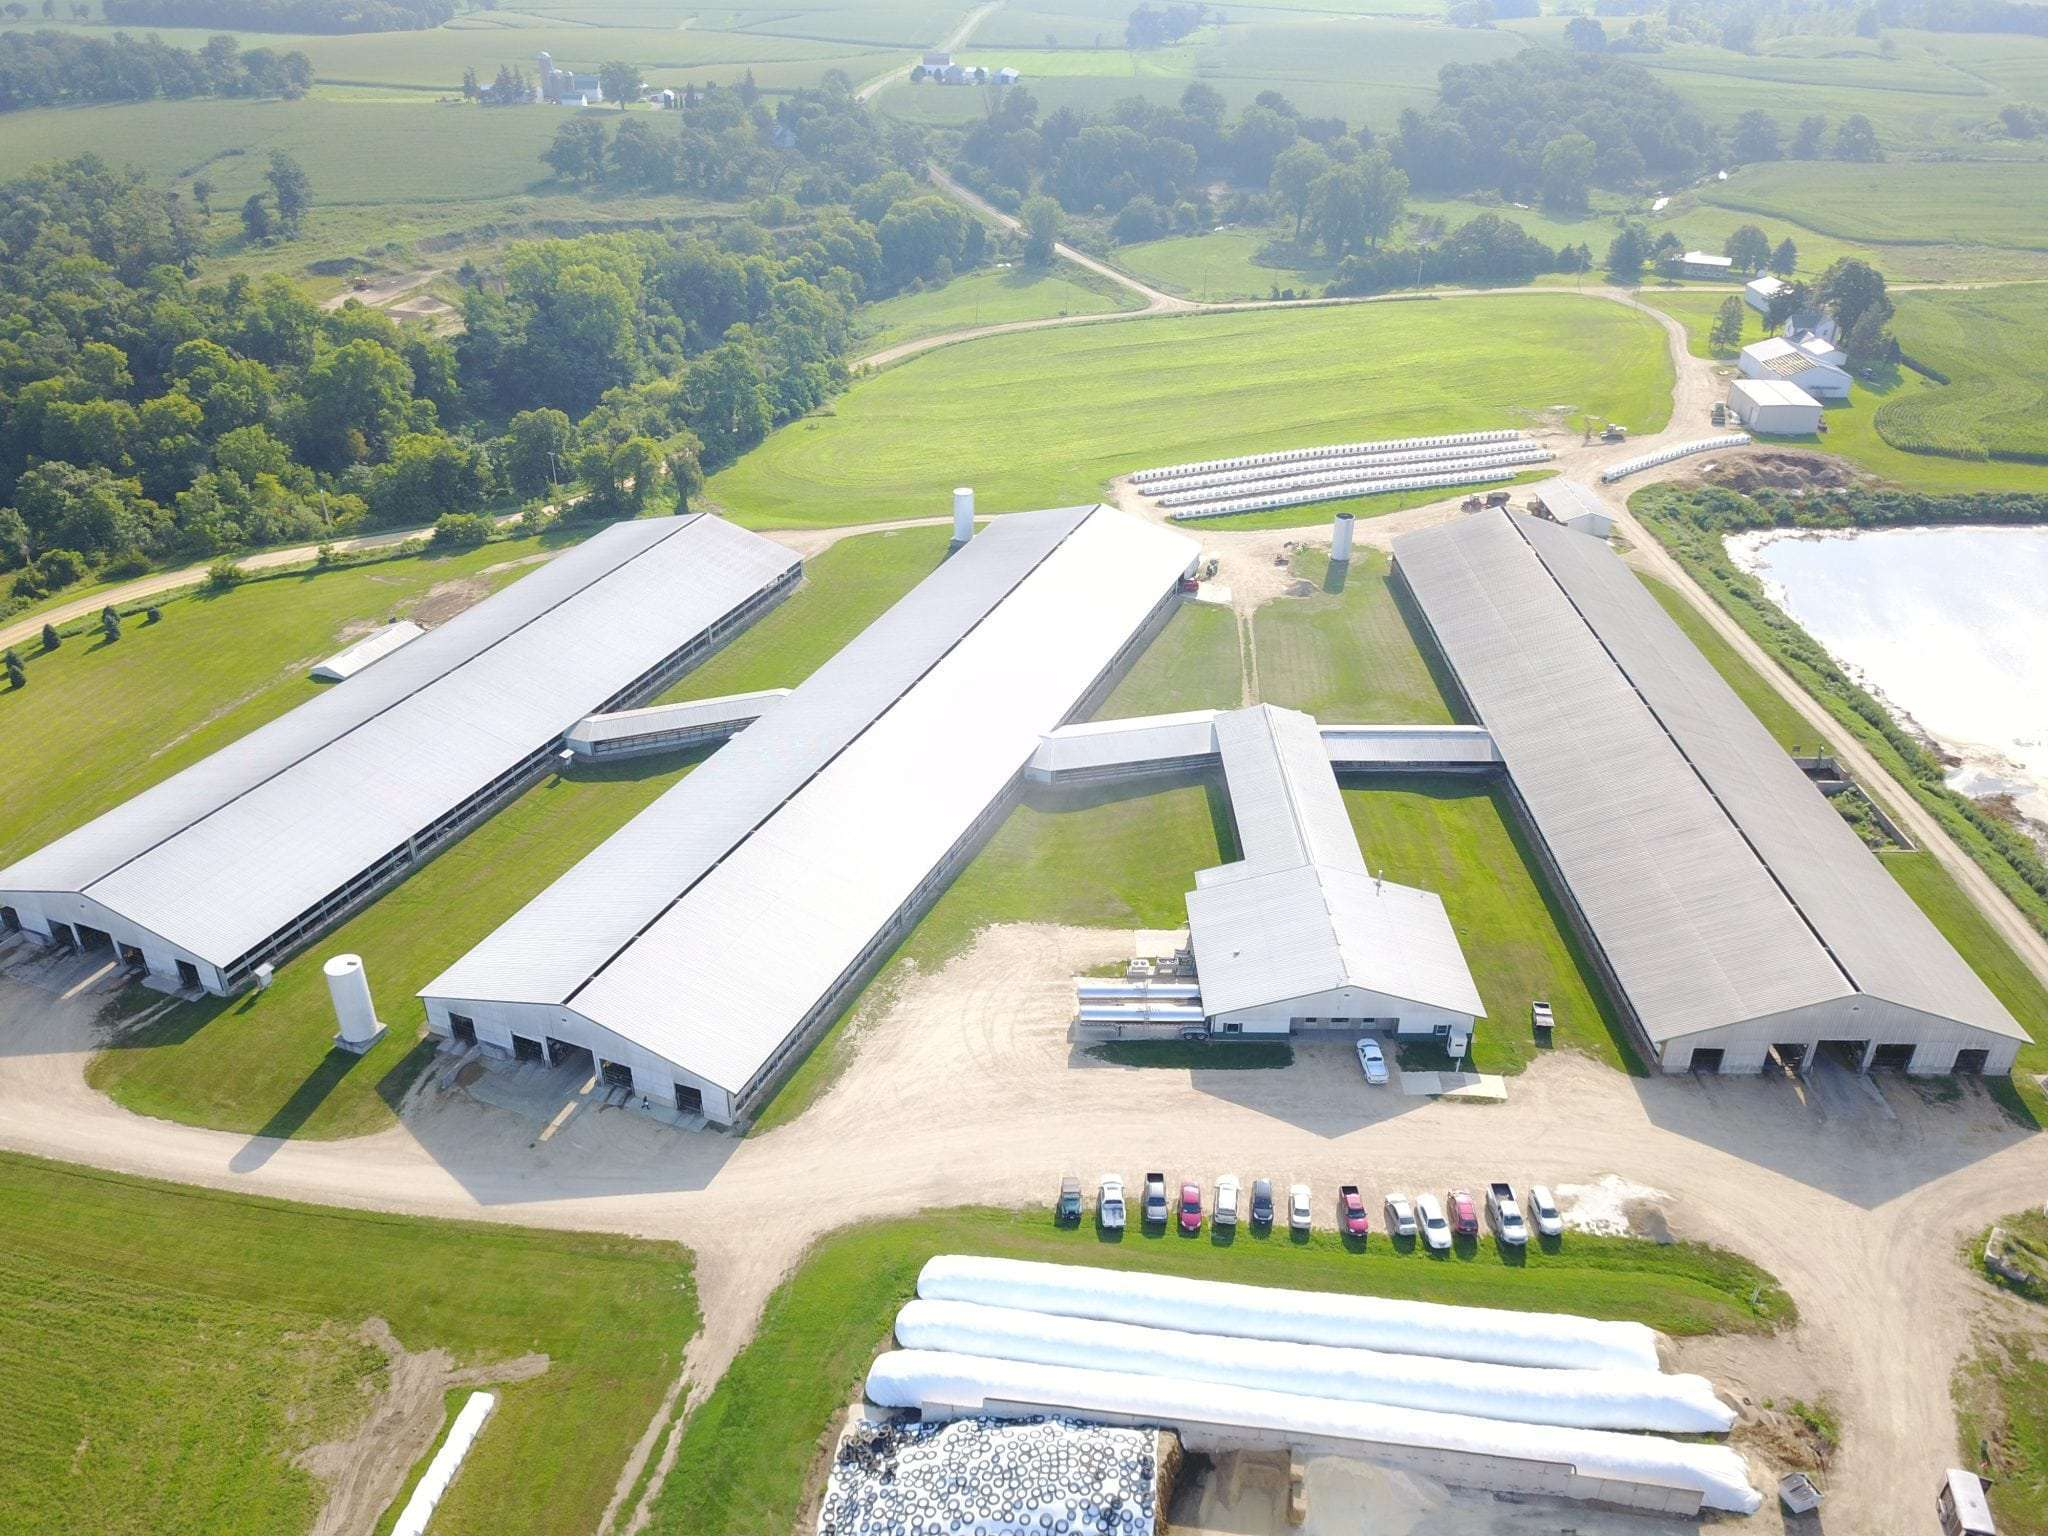 301 Ac Dairy and Land, Kent, IL